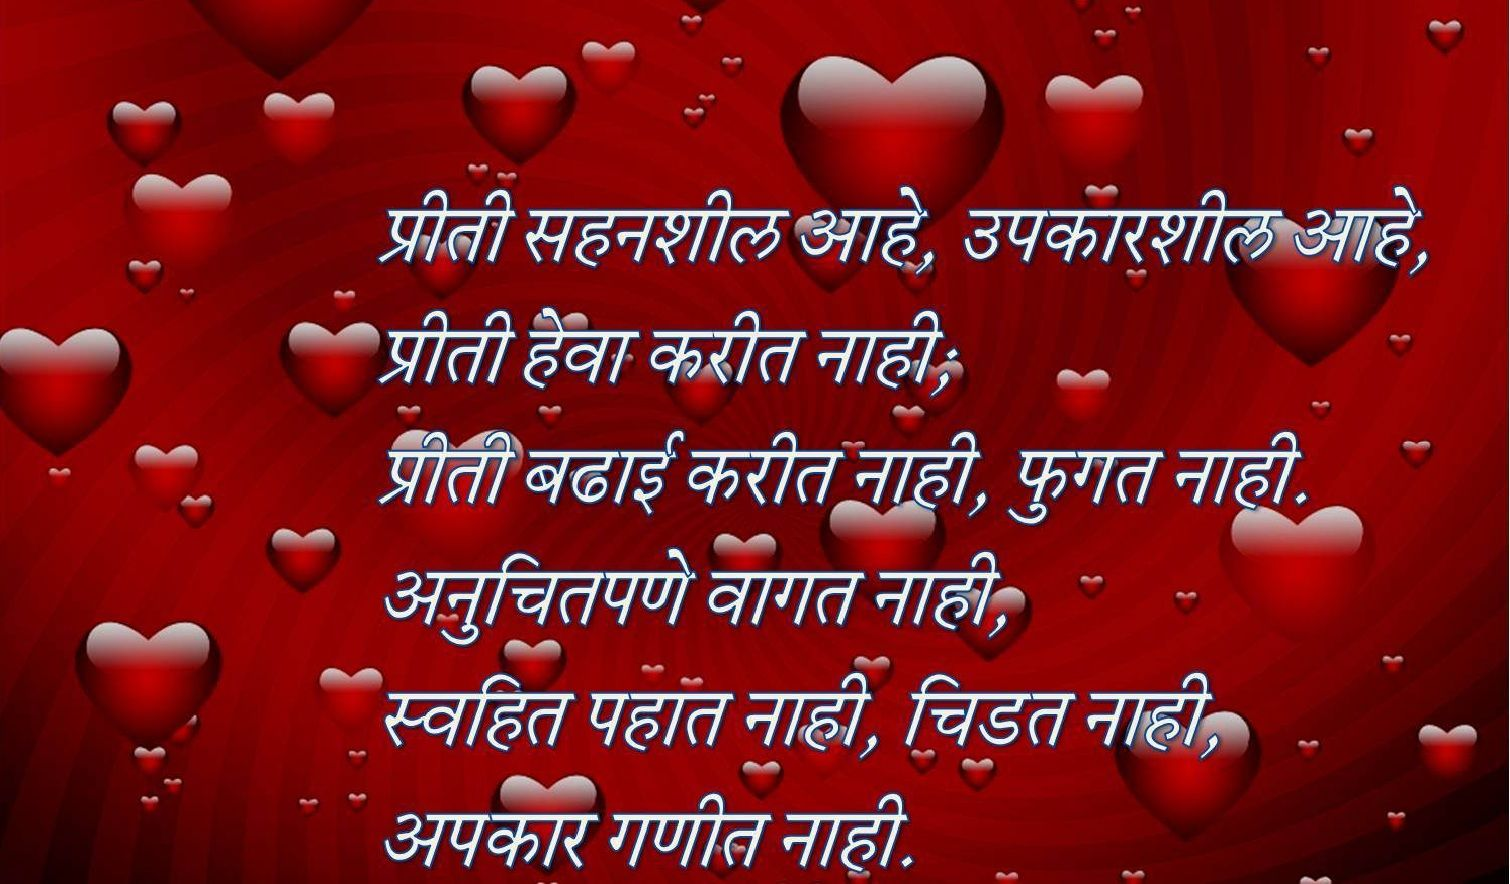 Valentines day wishes in Marathi 2018 Valentines day